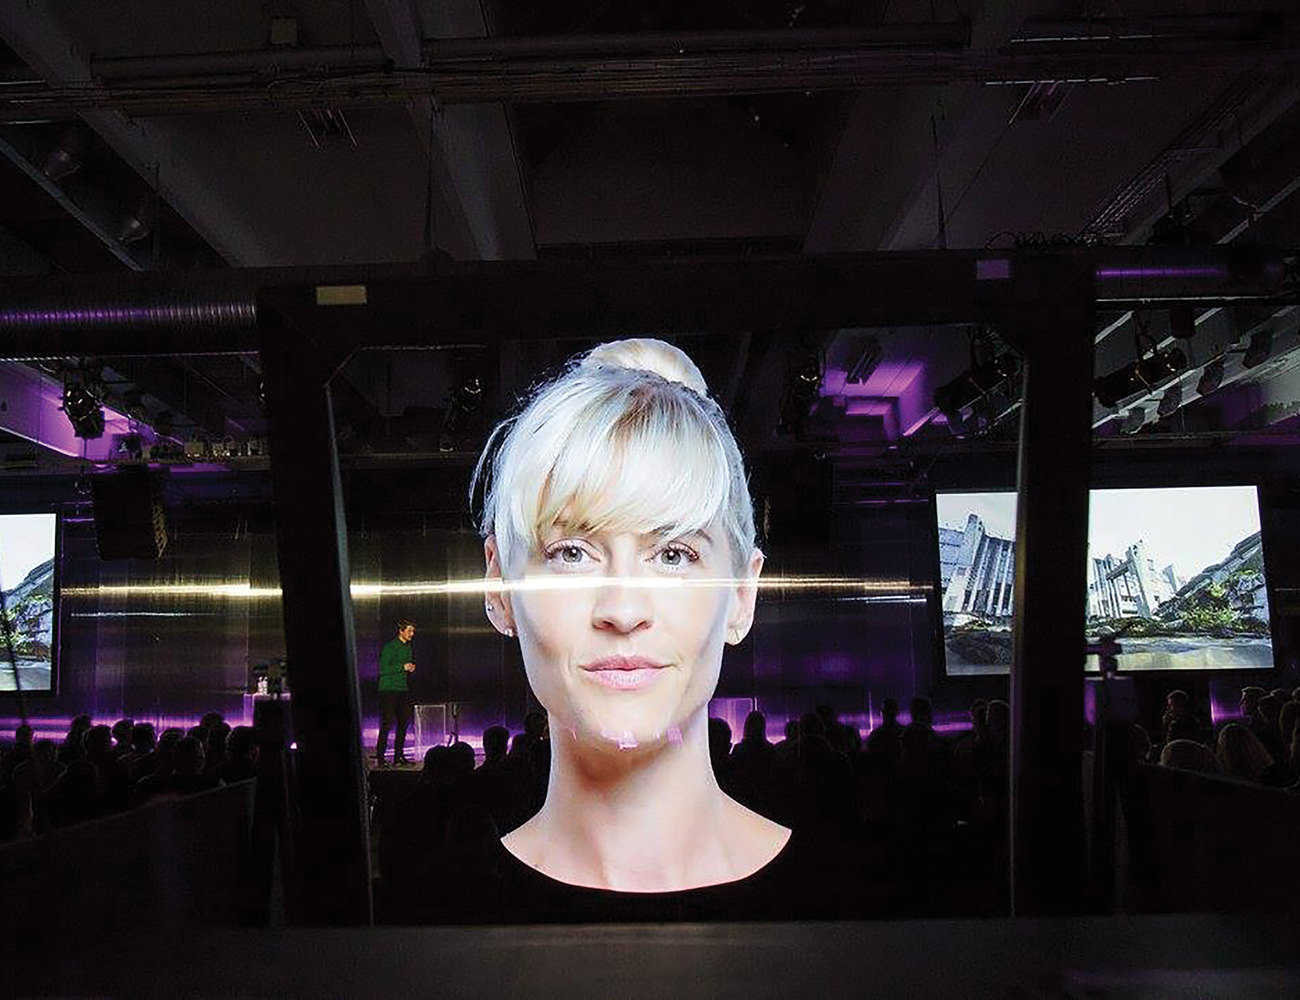 DeepFrame Life Size Augmented Reality Display